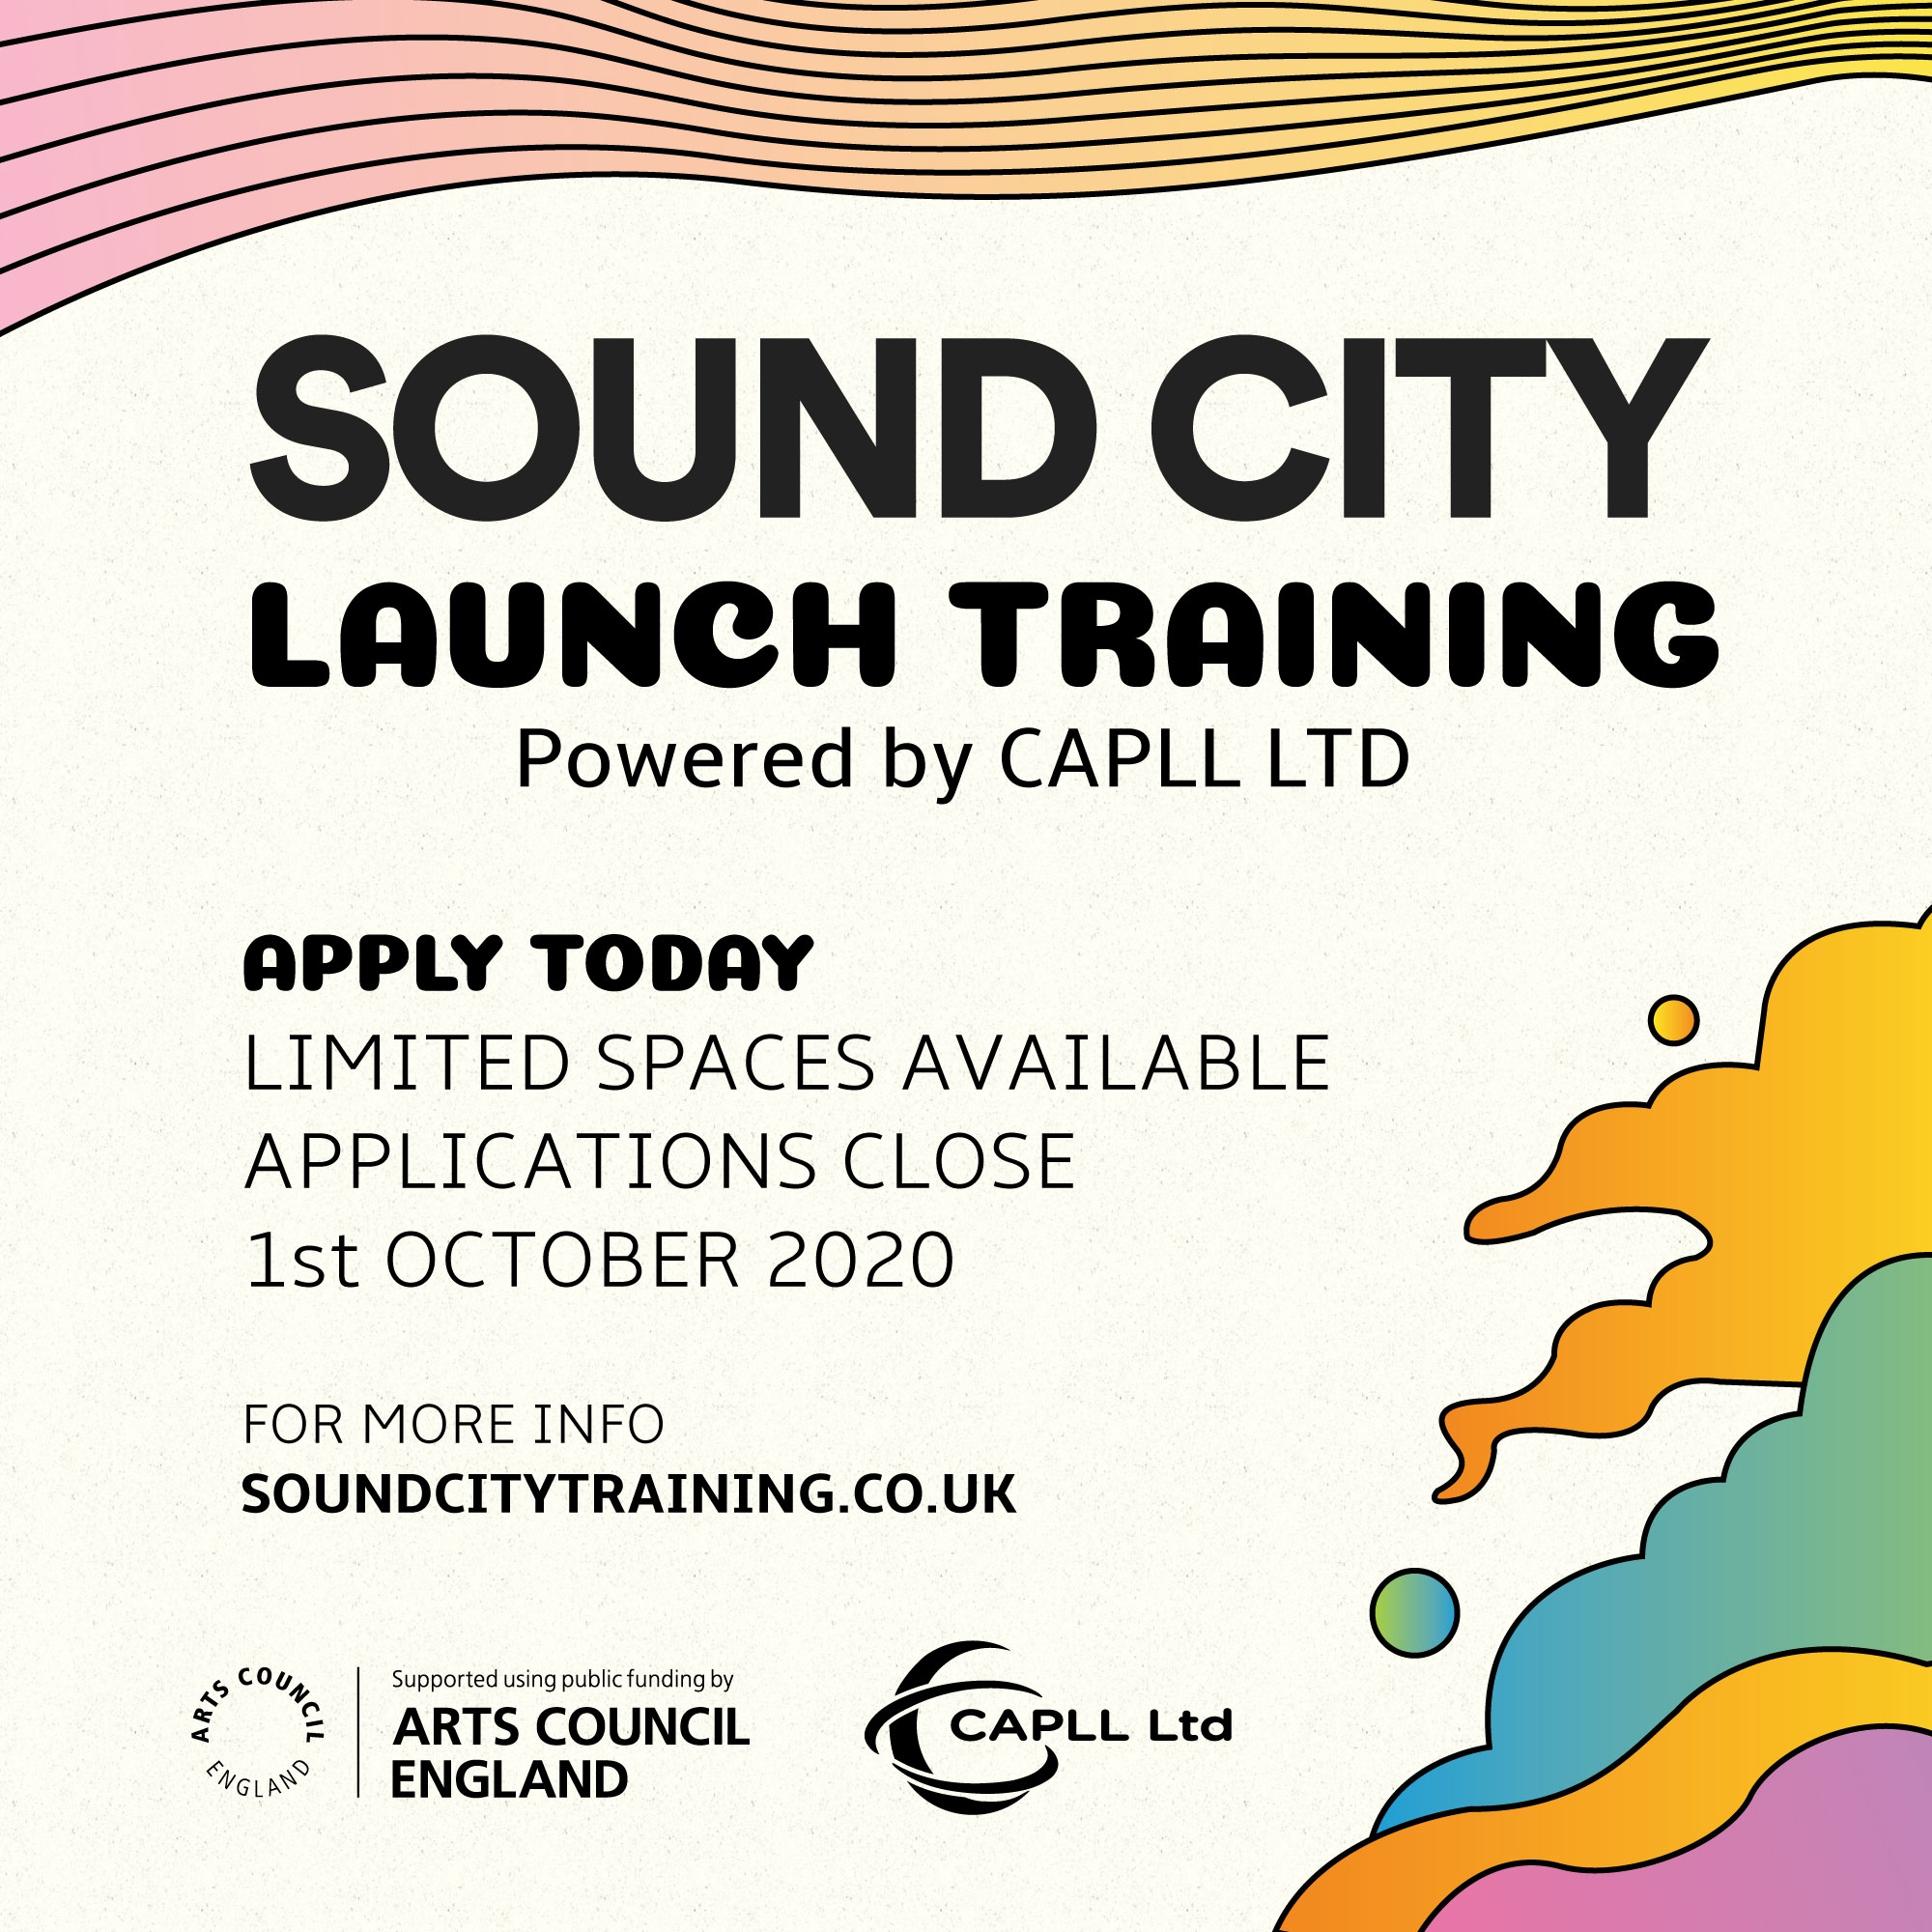 Sound City Launch Training applications are open now!